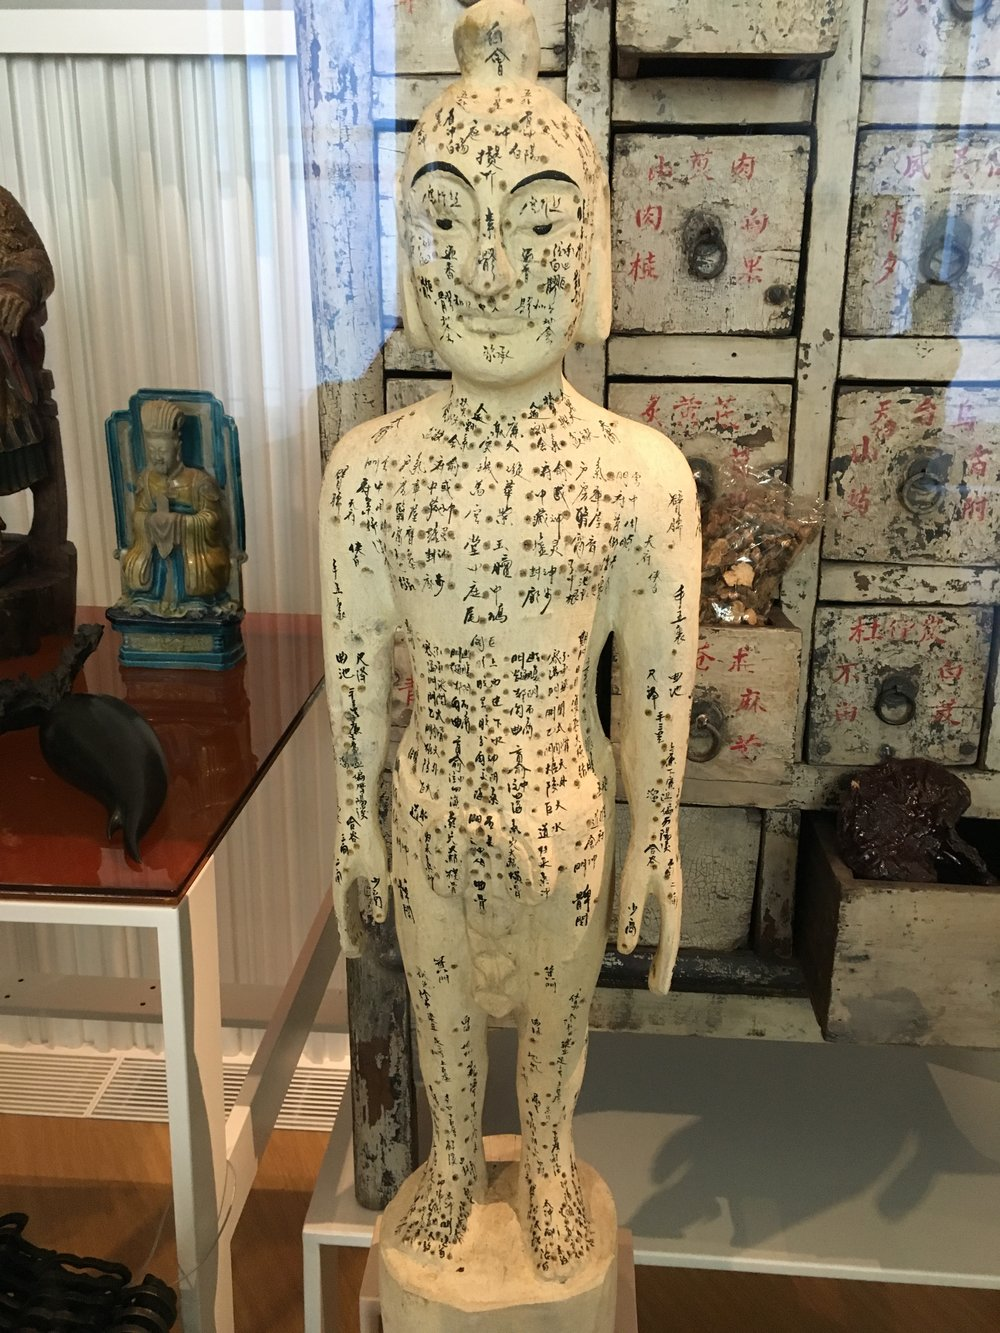 A 20th century mannequin showing acupuncture points. From Hebei Province, collected at the Musée de l'homme in Paris.